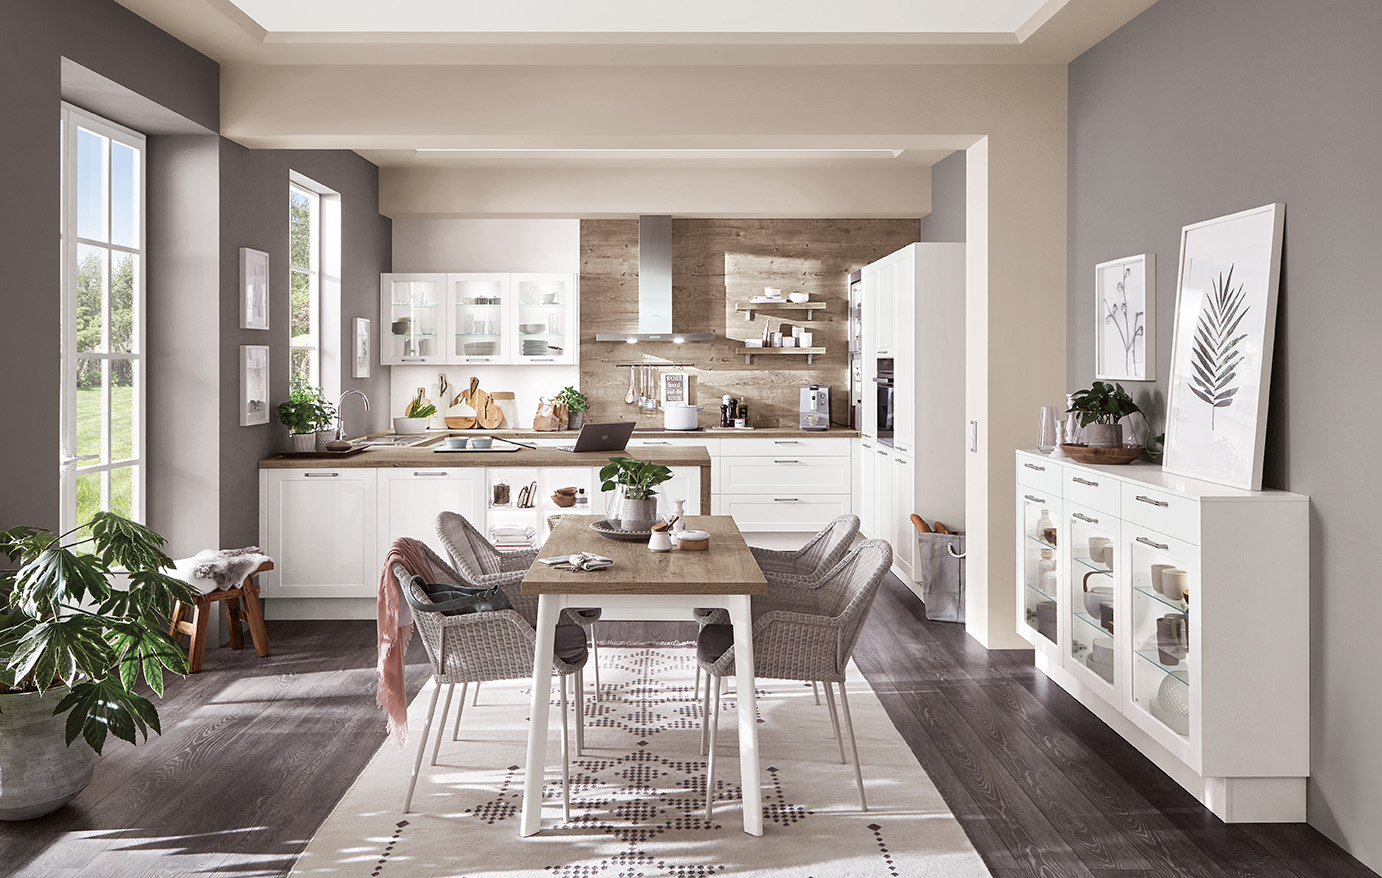 CLASSIC - The mix of modern function with traditional styling allows a classic kitchen from the Evoke Core Collection to impress with a unique charm and timeless look.